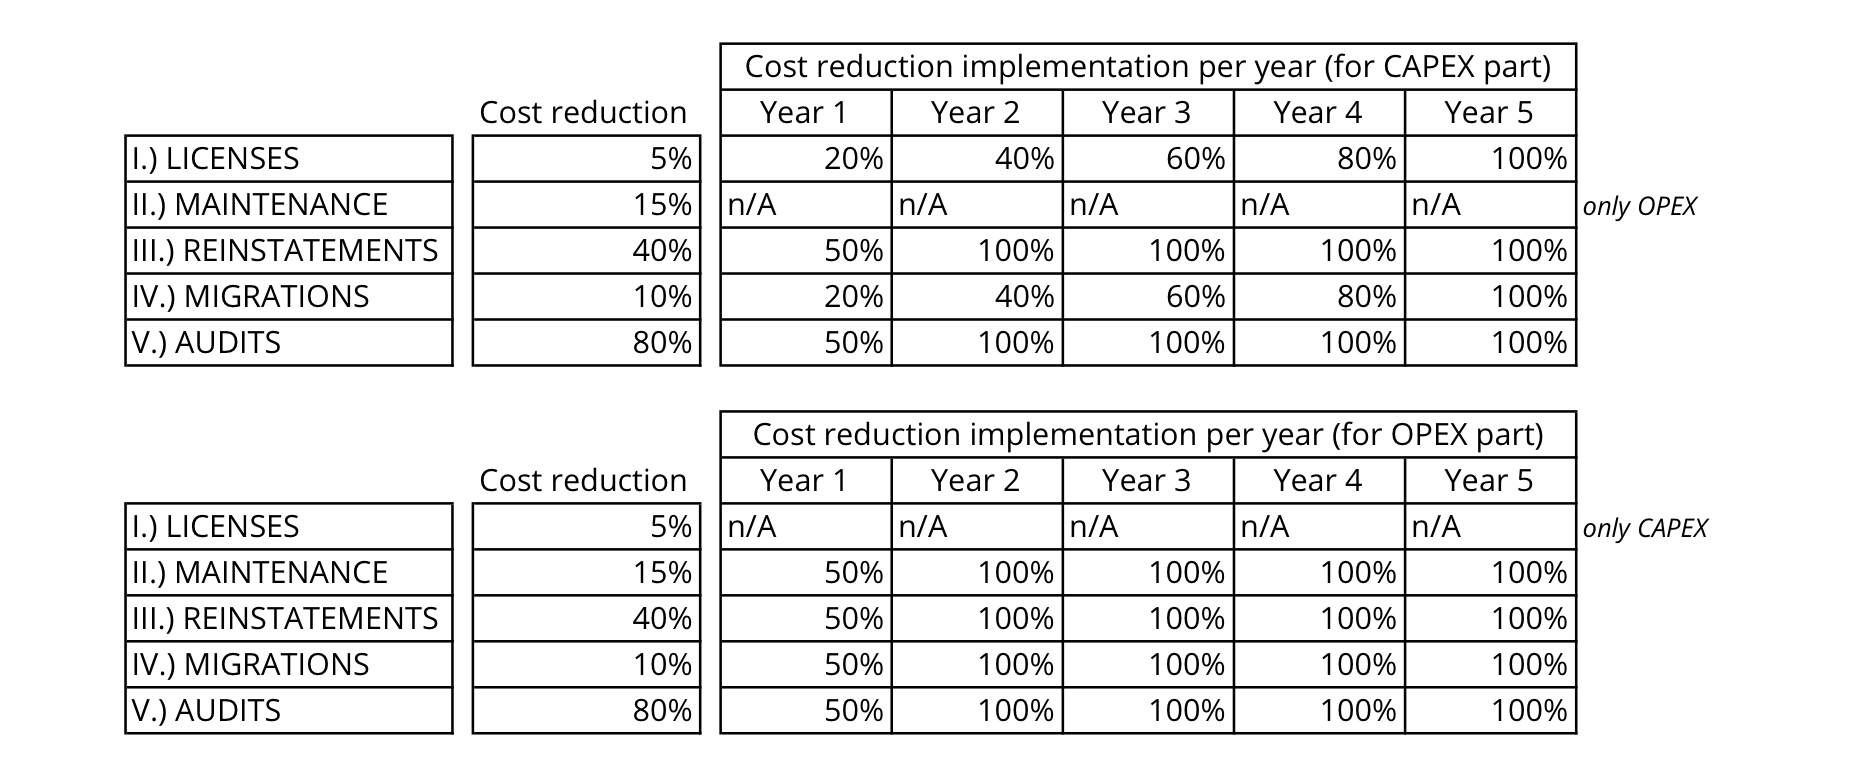 Exhibit 8 - Implementation Of Cost Reduction